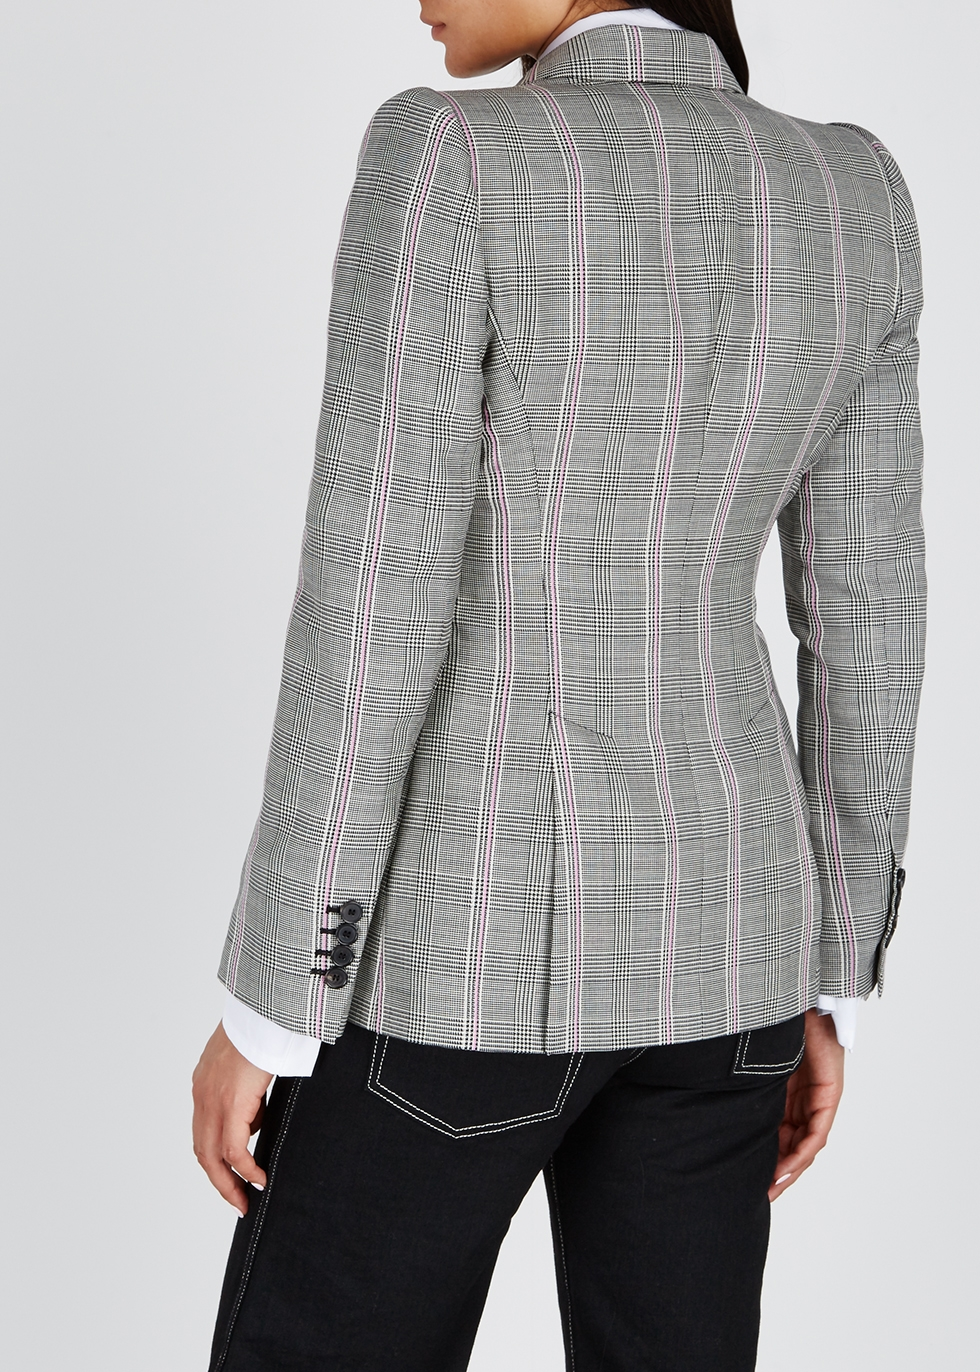 Grey checked wool blazer - Alexander McQueen